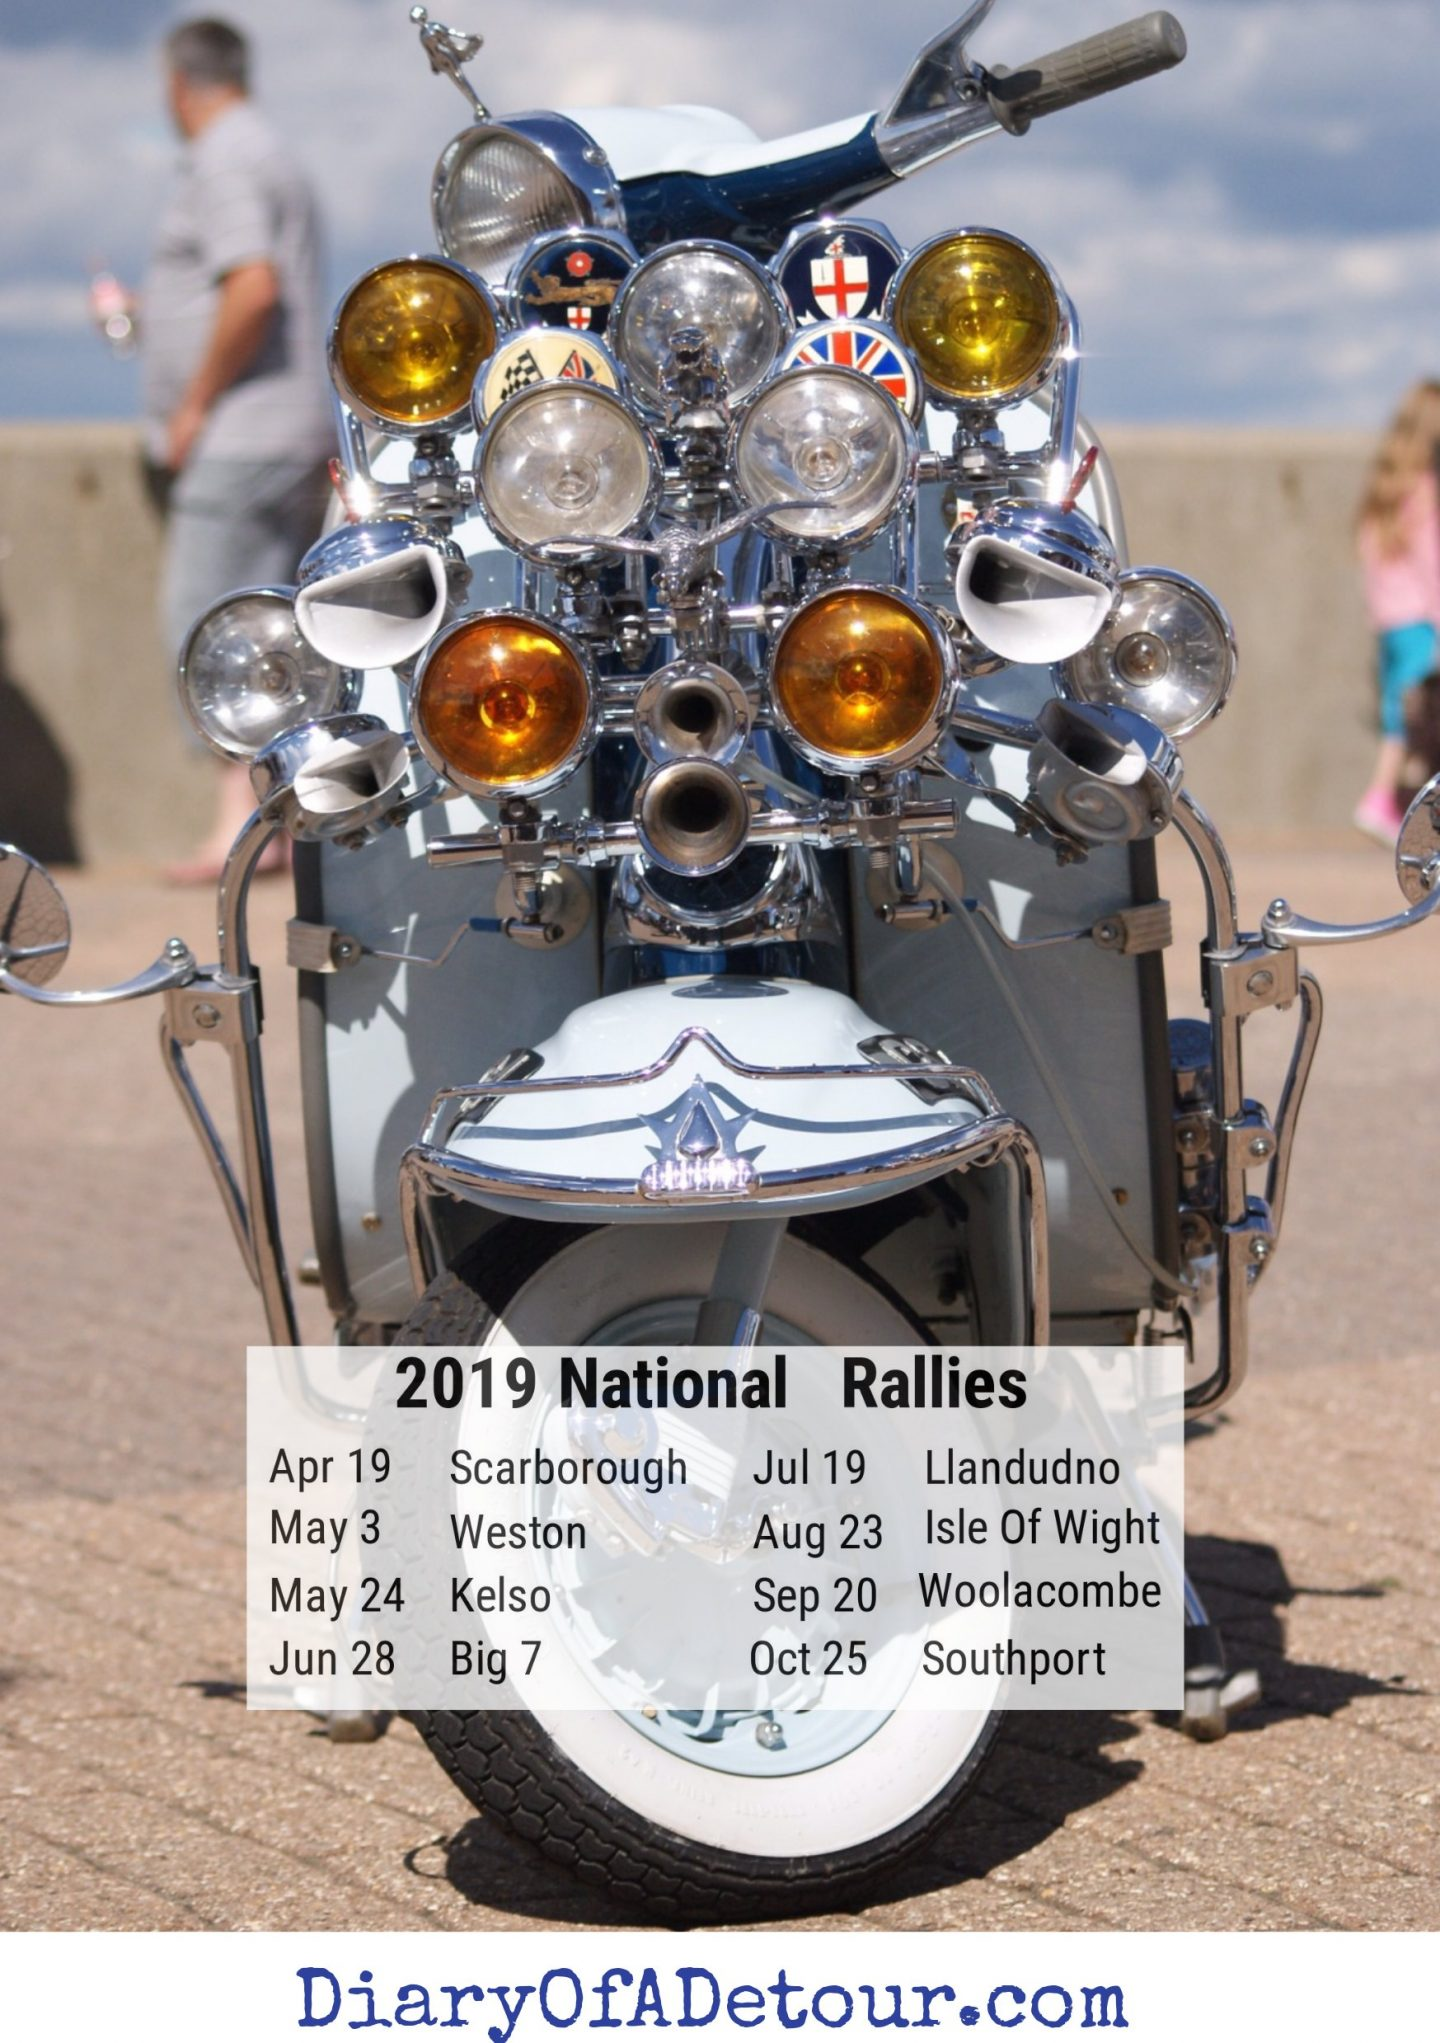 Free mod wallpaper featuring a Lambretta from the 2010 Isle of Wight scooter rally pictured on Ryde esplanade